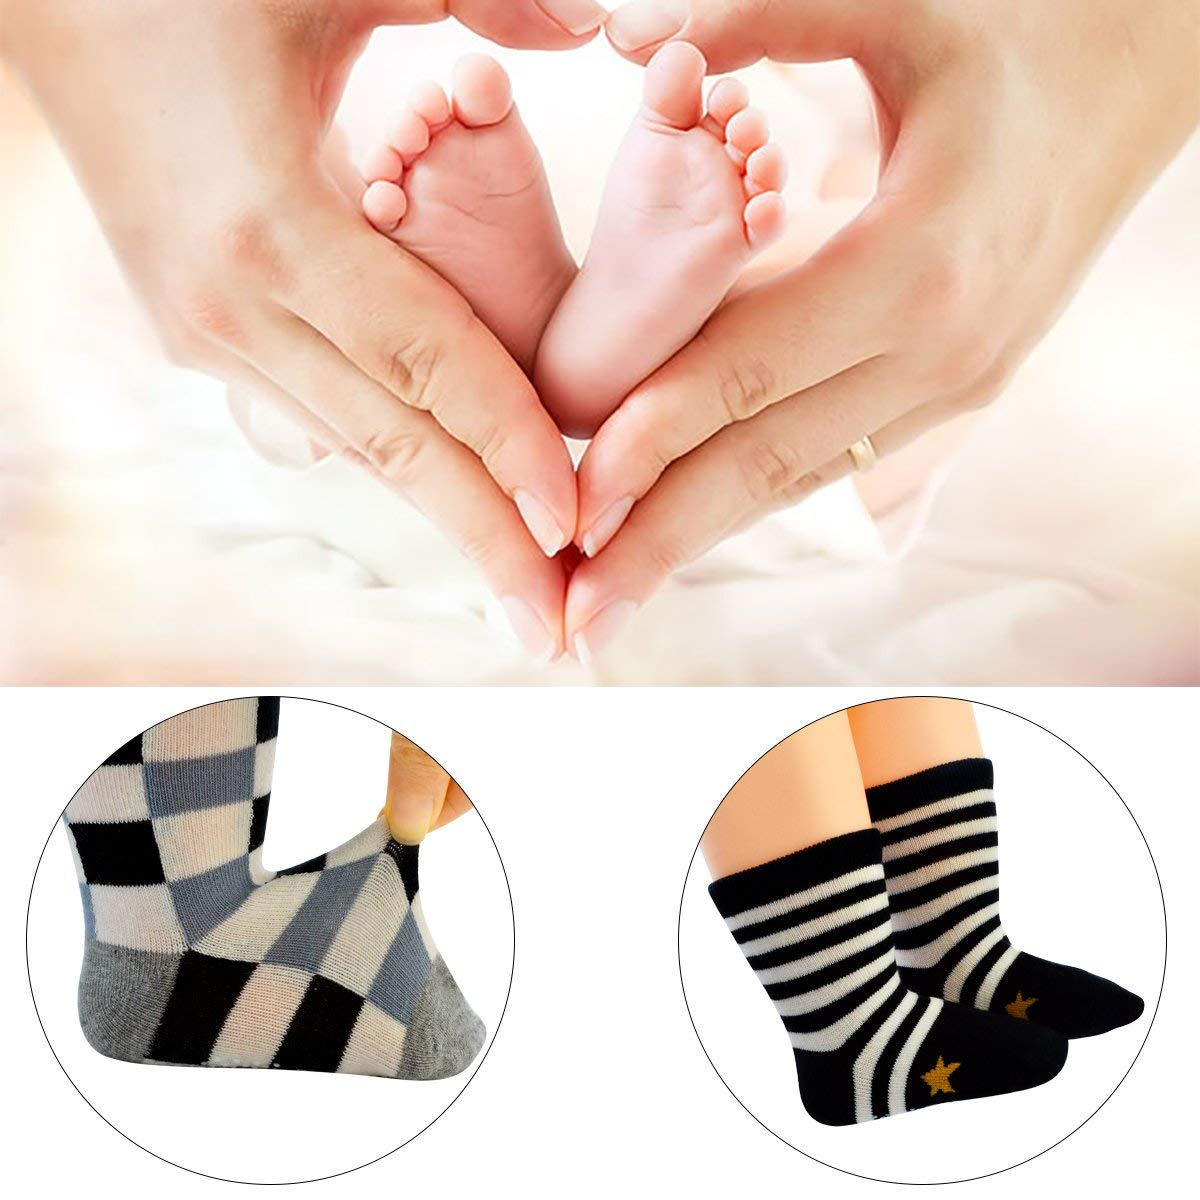 Poualss 6 Pairs Toddlers Socks,Anti Slip Ankle Cotton with Grips Ankle Socks for 12-36 Months Baby Toddlers